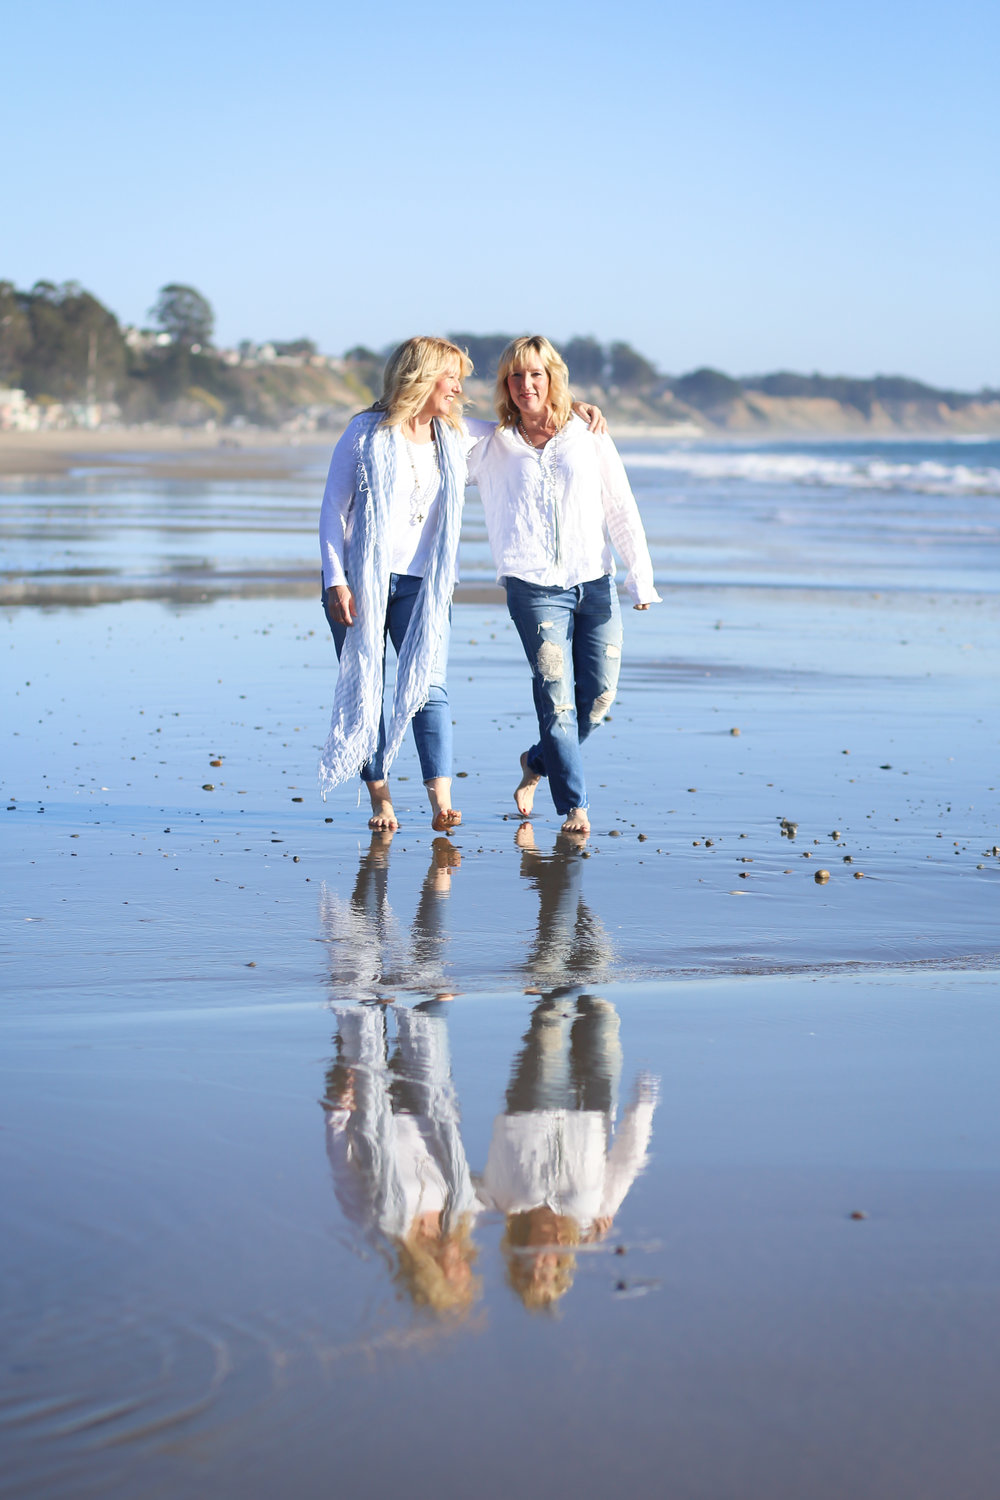 Twins walking on beach